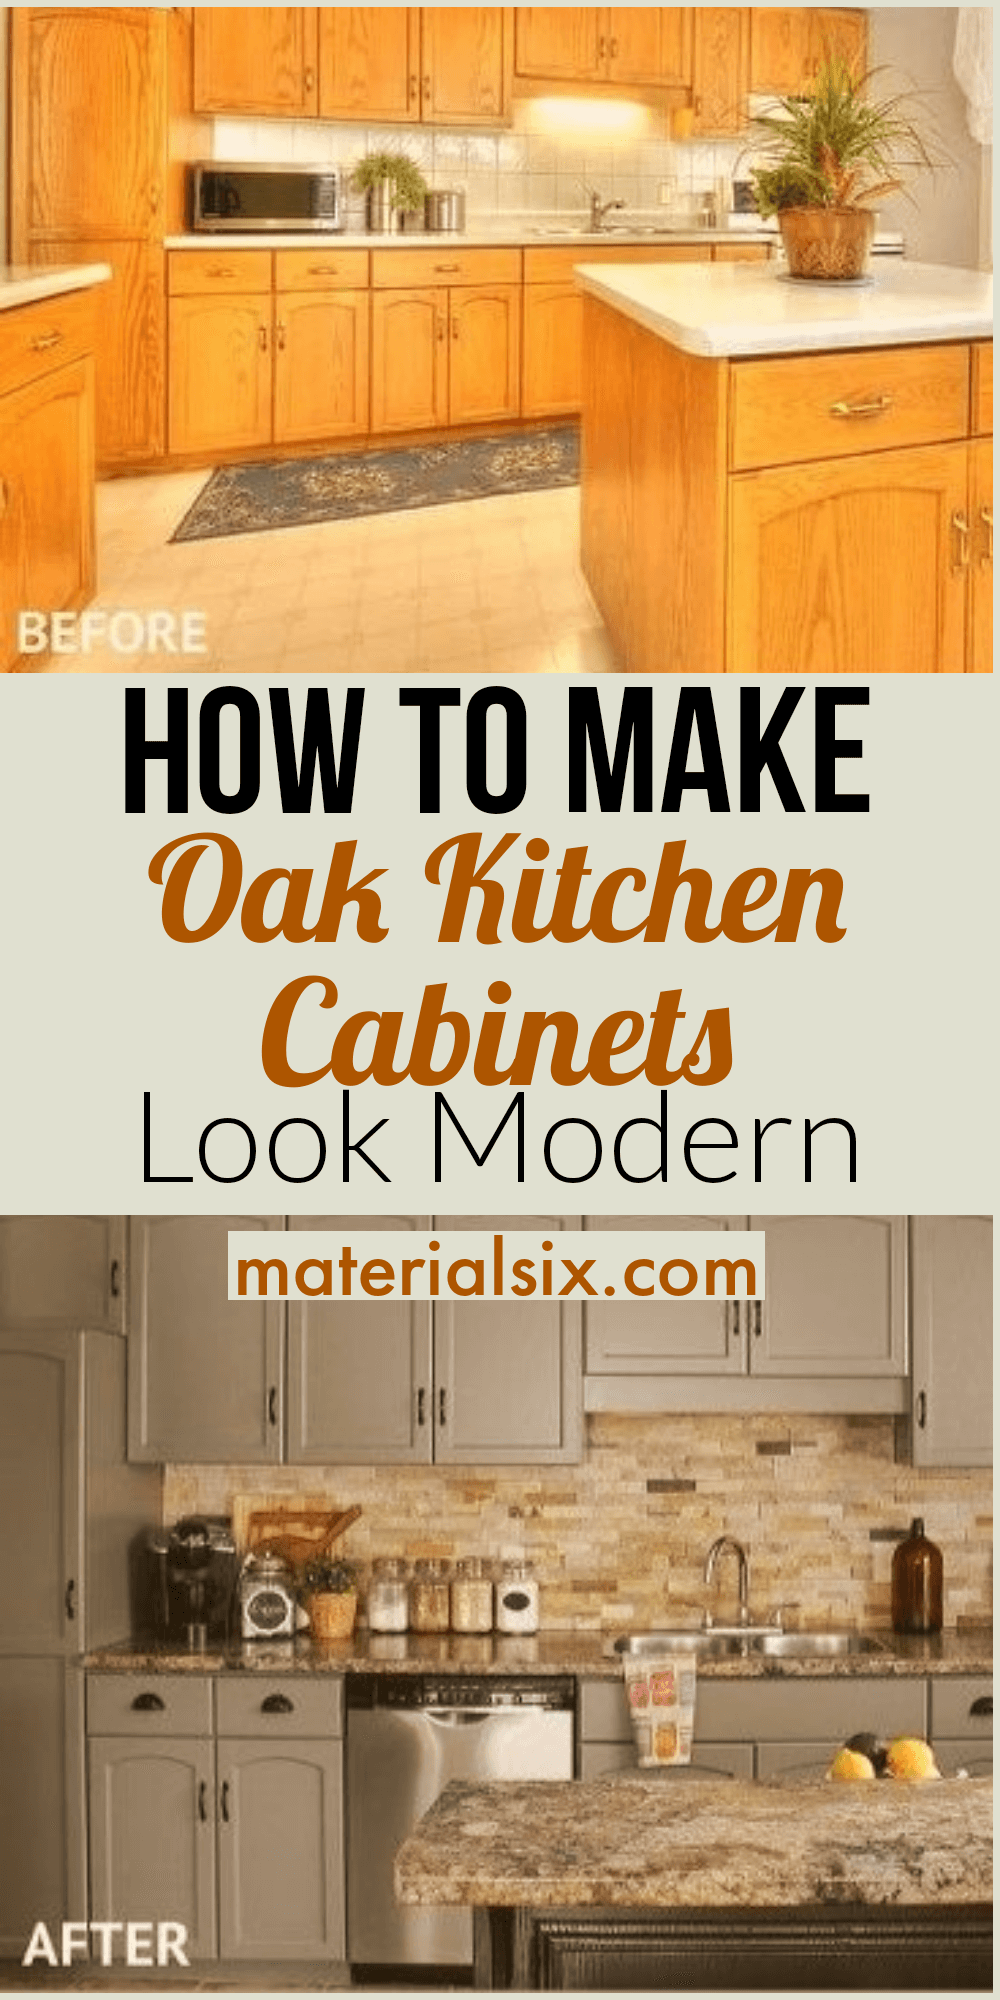 How To Make Oak Kitchen Cabinets Look Modern Materialsix Com In 2020 Kitchen Cabinets Oak Kitchen Oak Kitchen Remodel